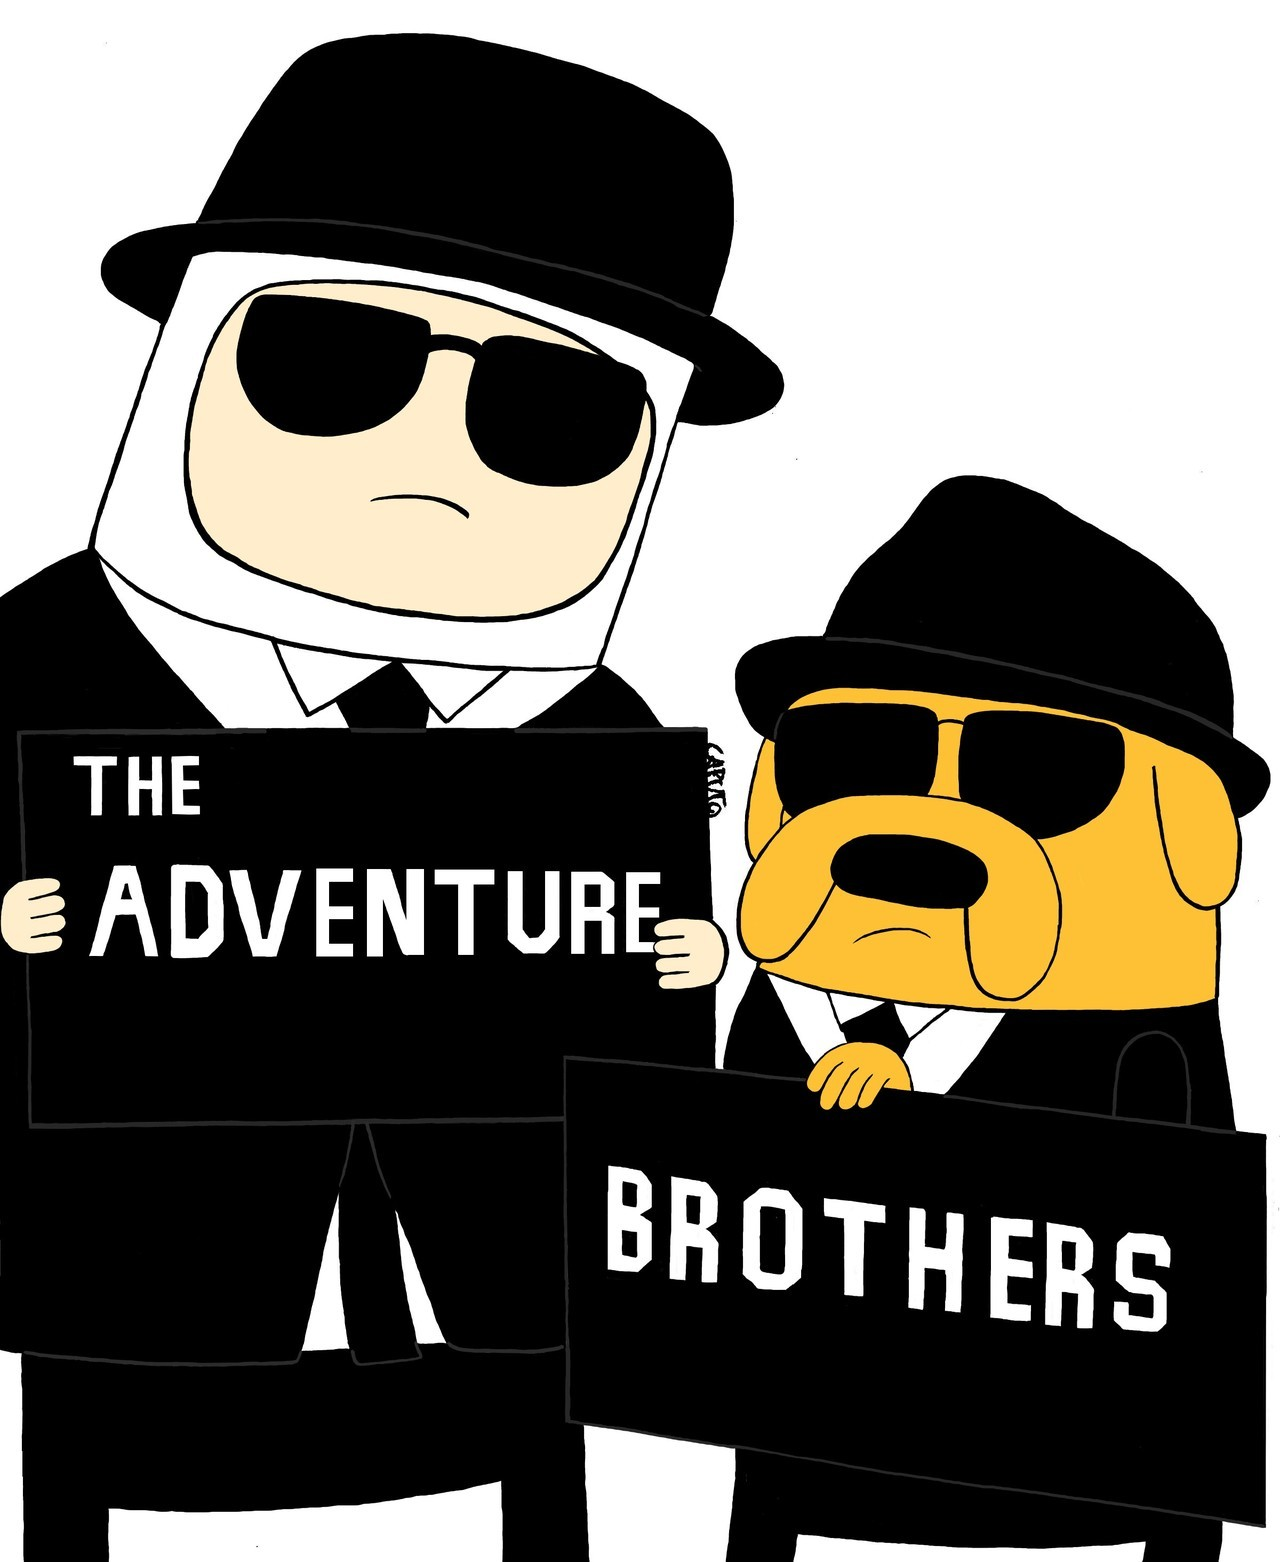 mrcaputo:  The Adventure Brothers